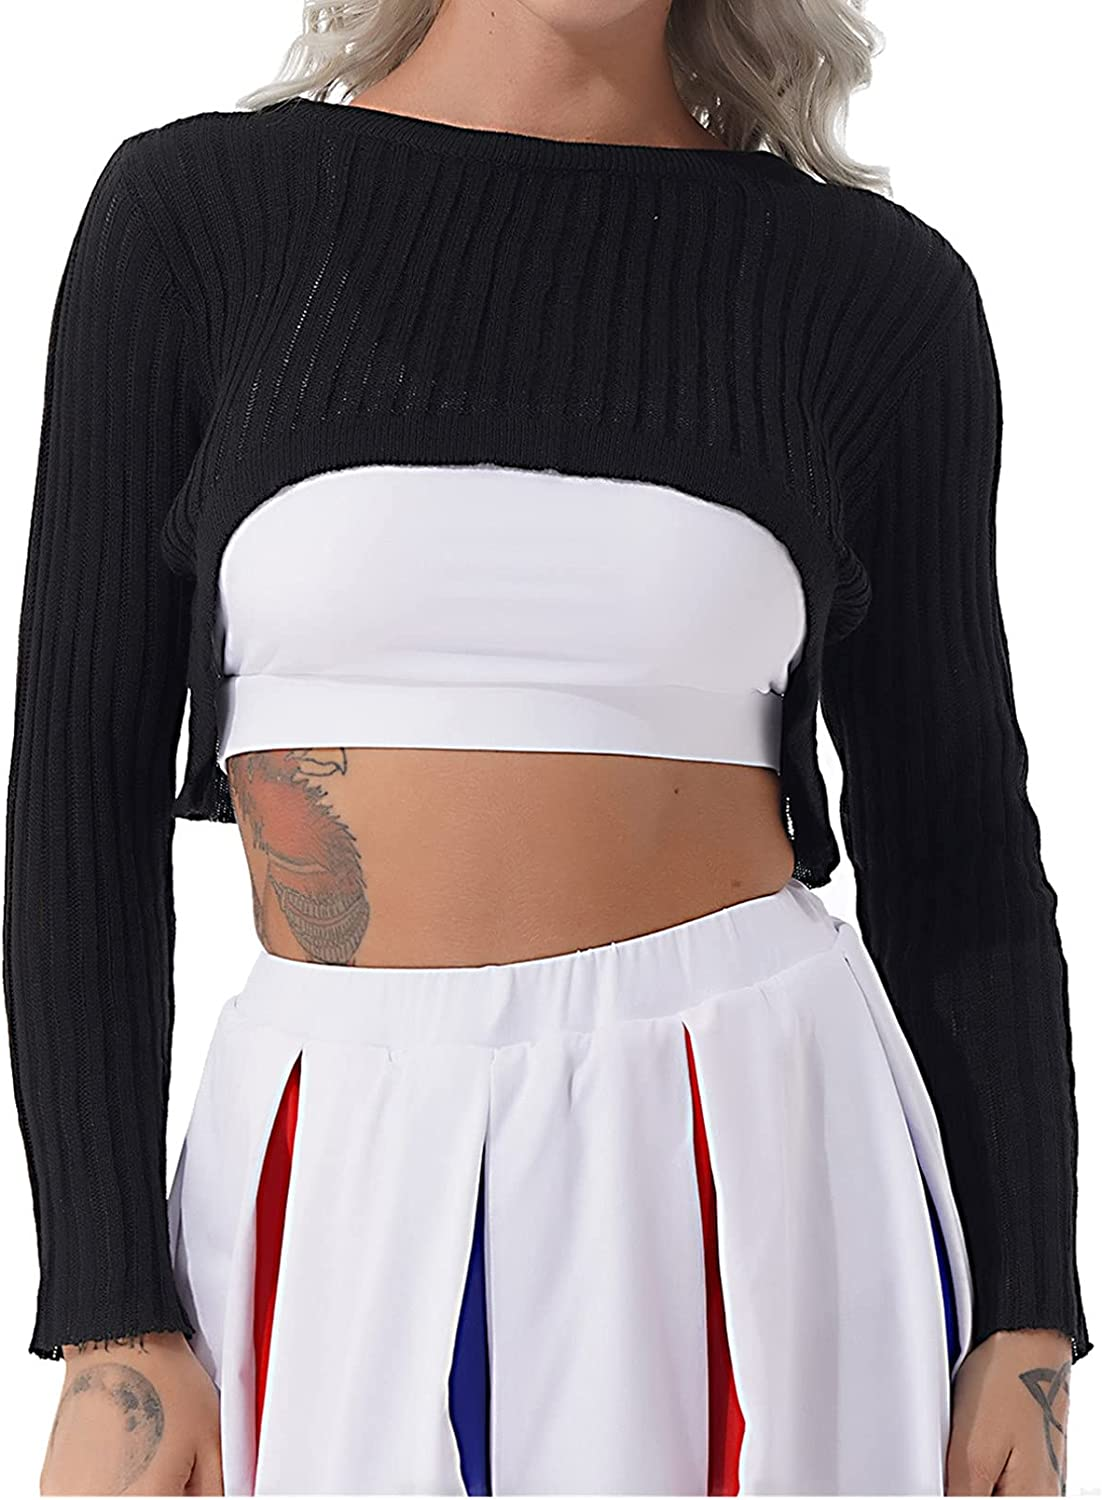 iiniim Women's Round Neck Knit Shrug Sweater Long Sleeve Cutout Crop Top Pullover Ribbed Cropped Knitwear